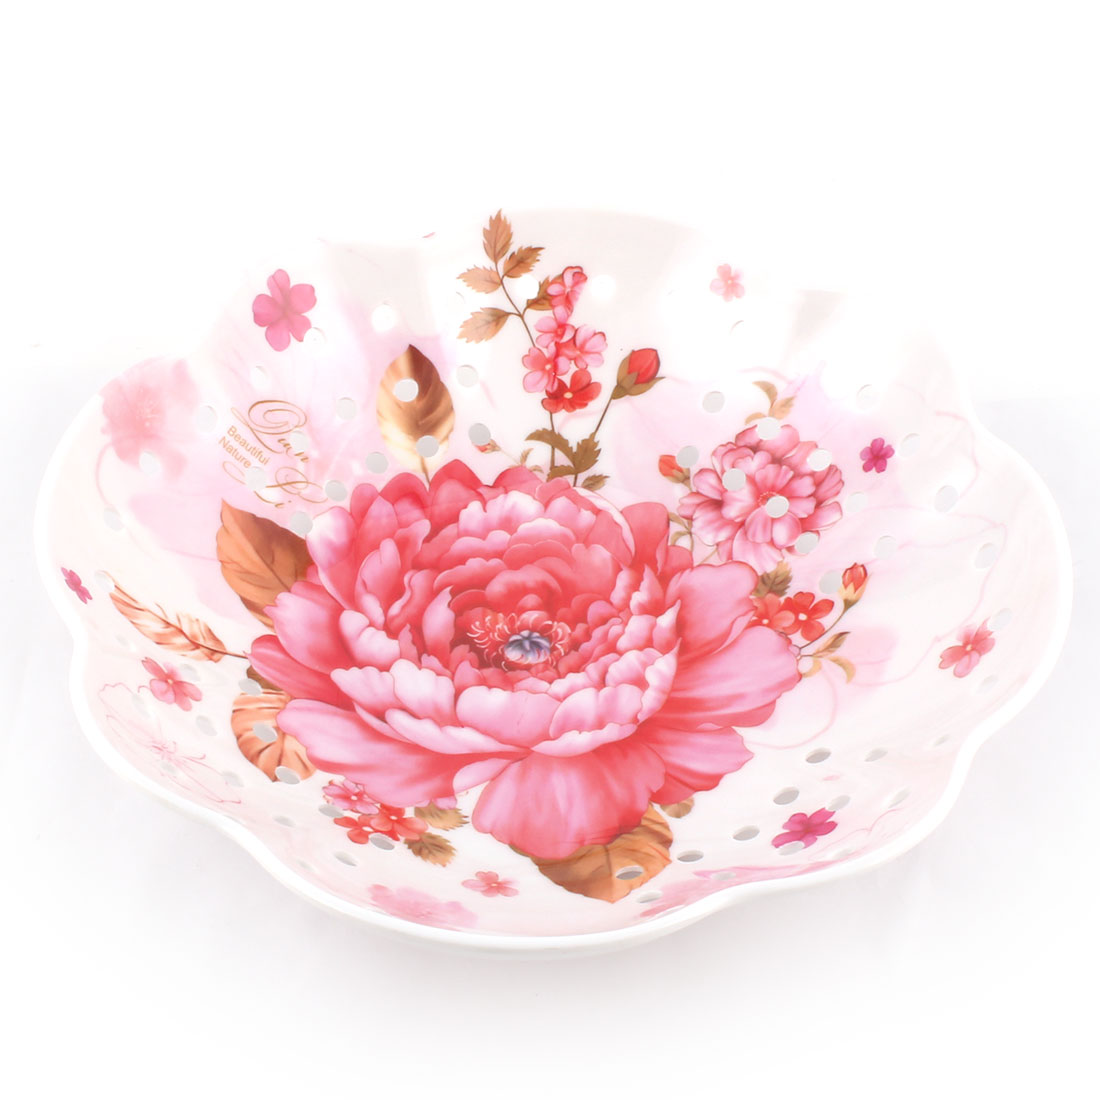 Home Melamine Flower Shaped Peony Print Table Decor Candy Fruit Plate Colorful